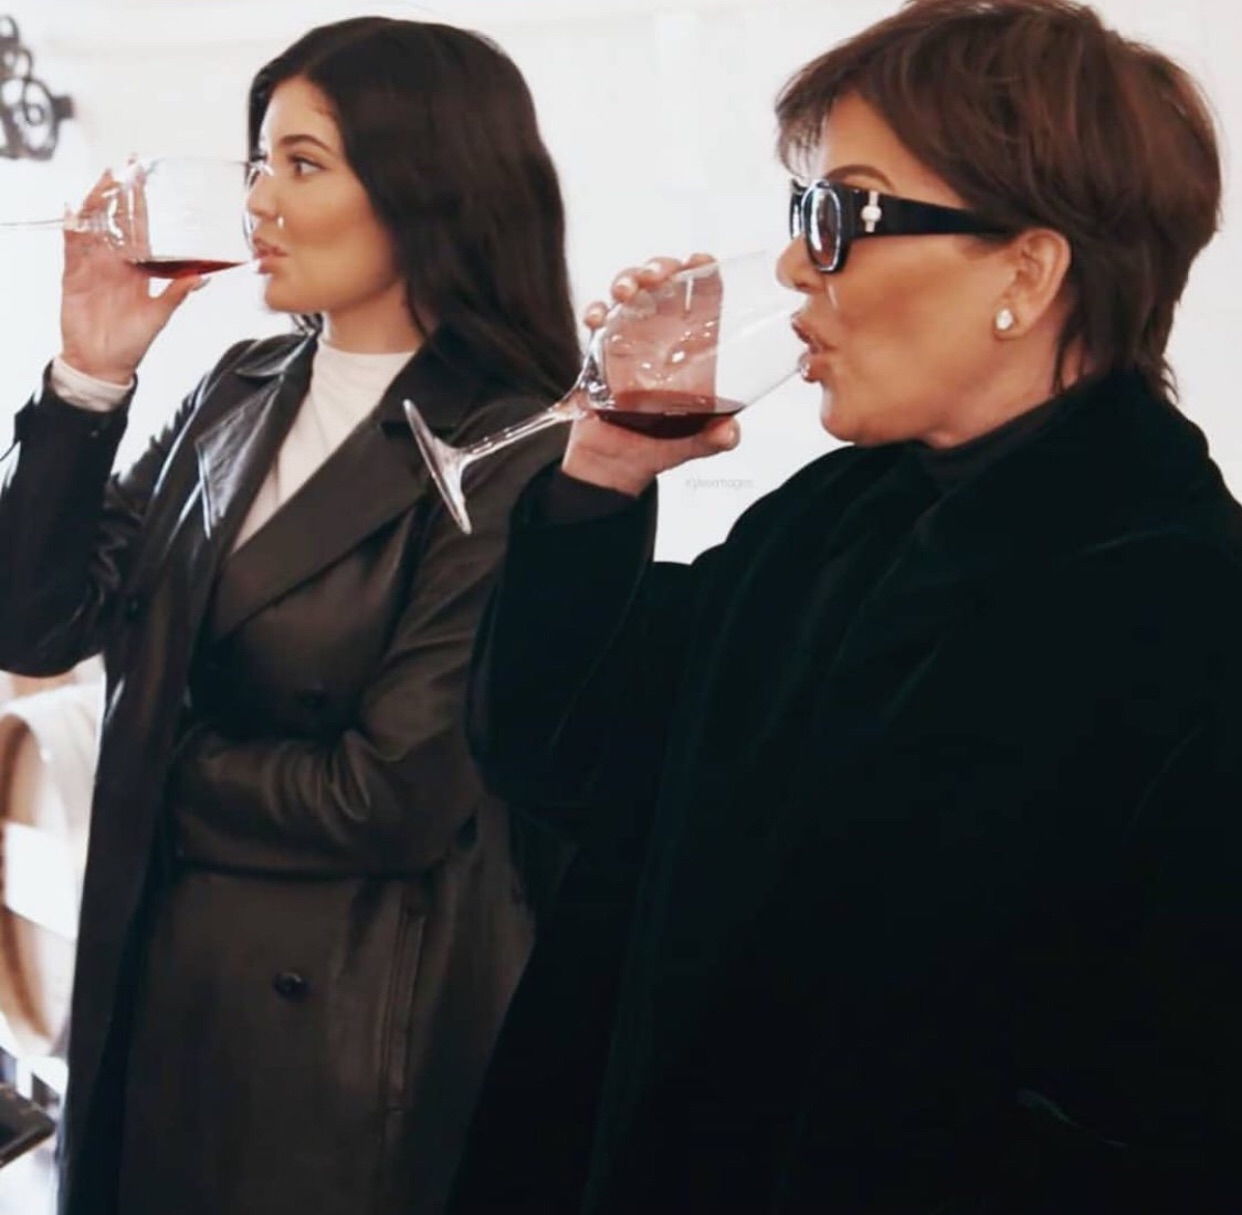 kylie jenner, mood, and reaction image